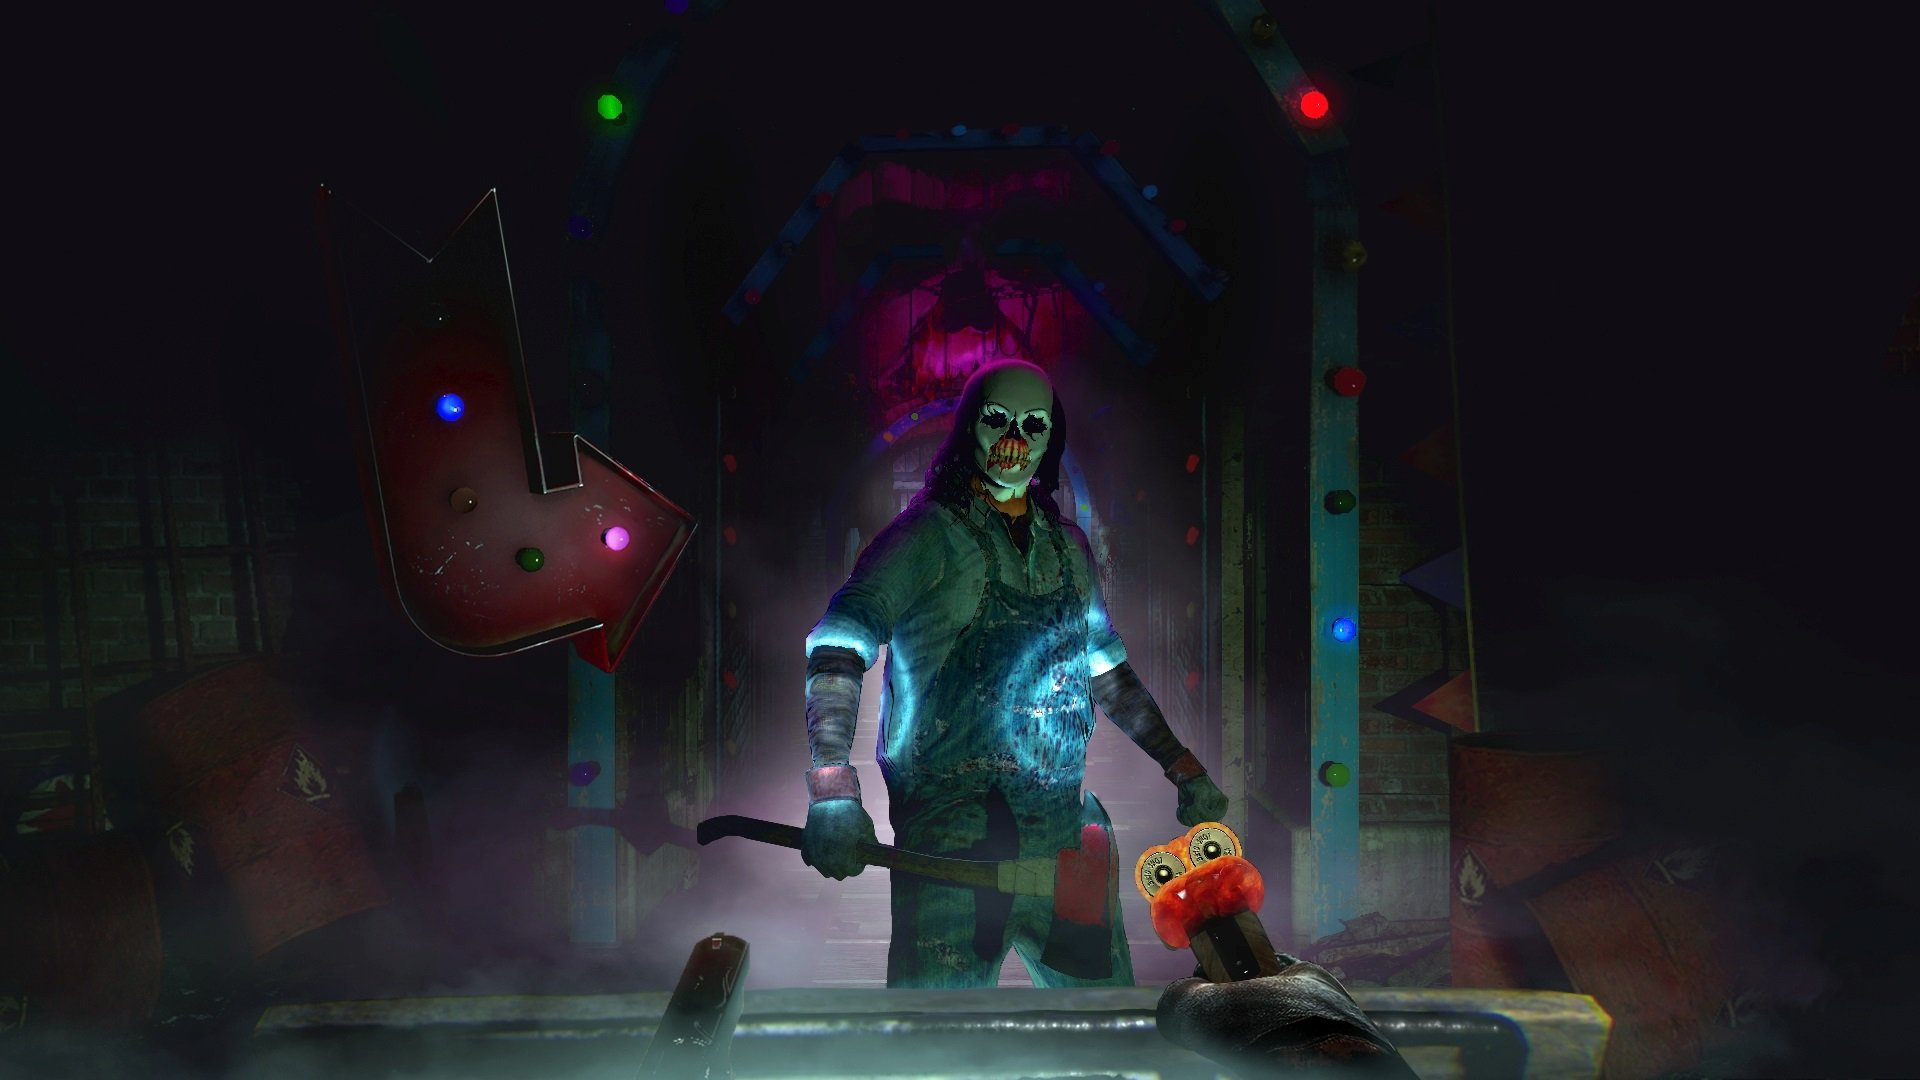 New Until Dawn: Rush Of Blood Video Has Developers 'Getting The Best Out Of PlayStation VR'